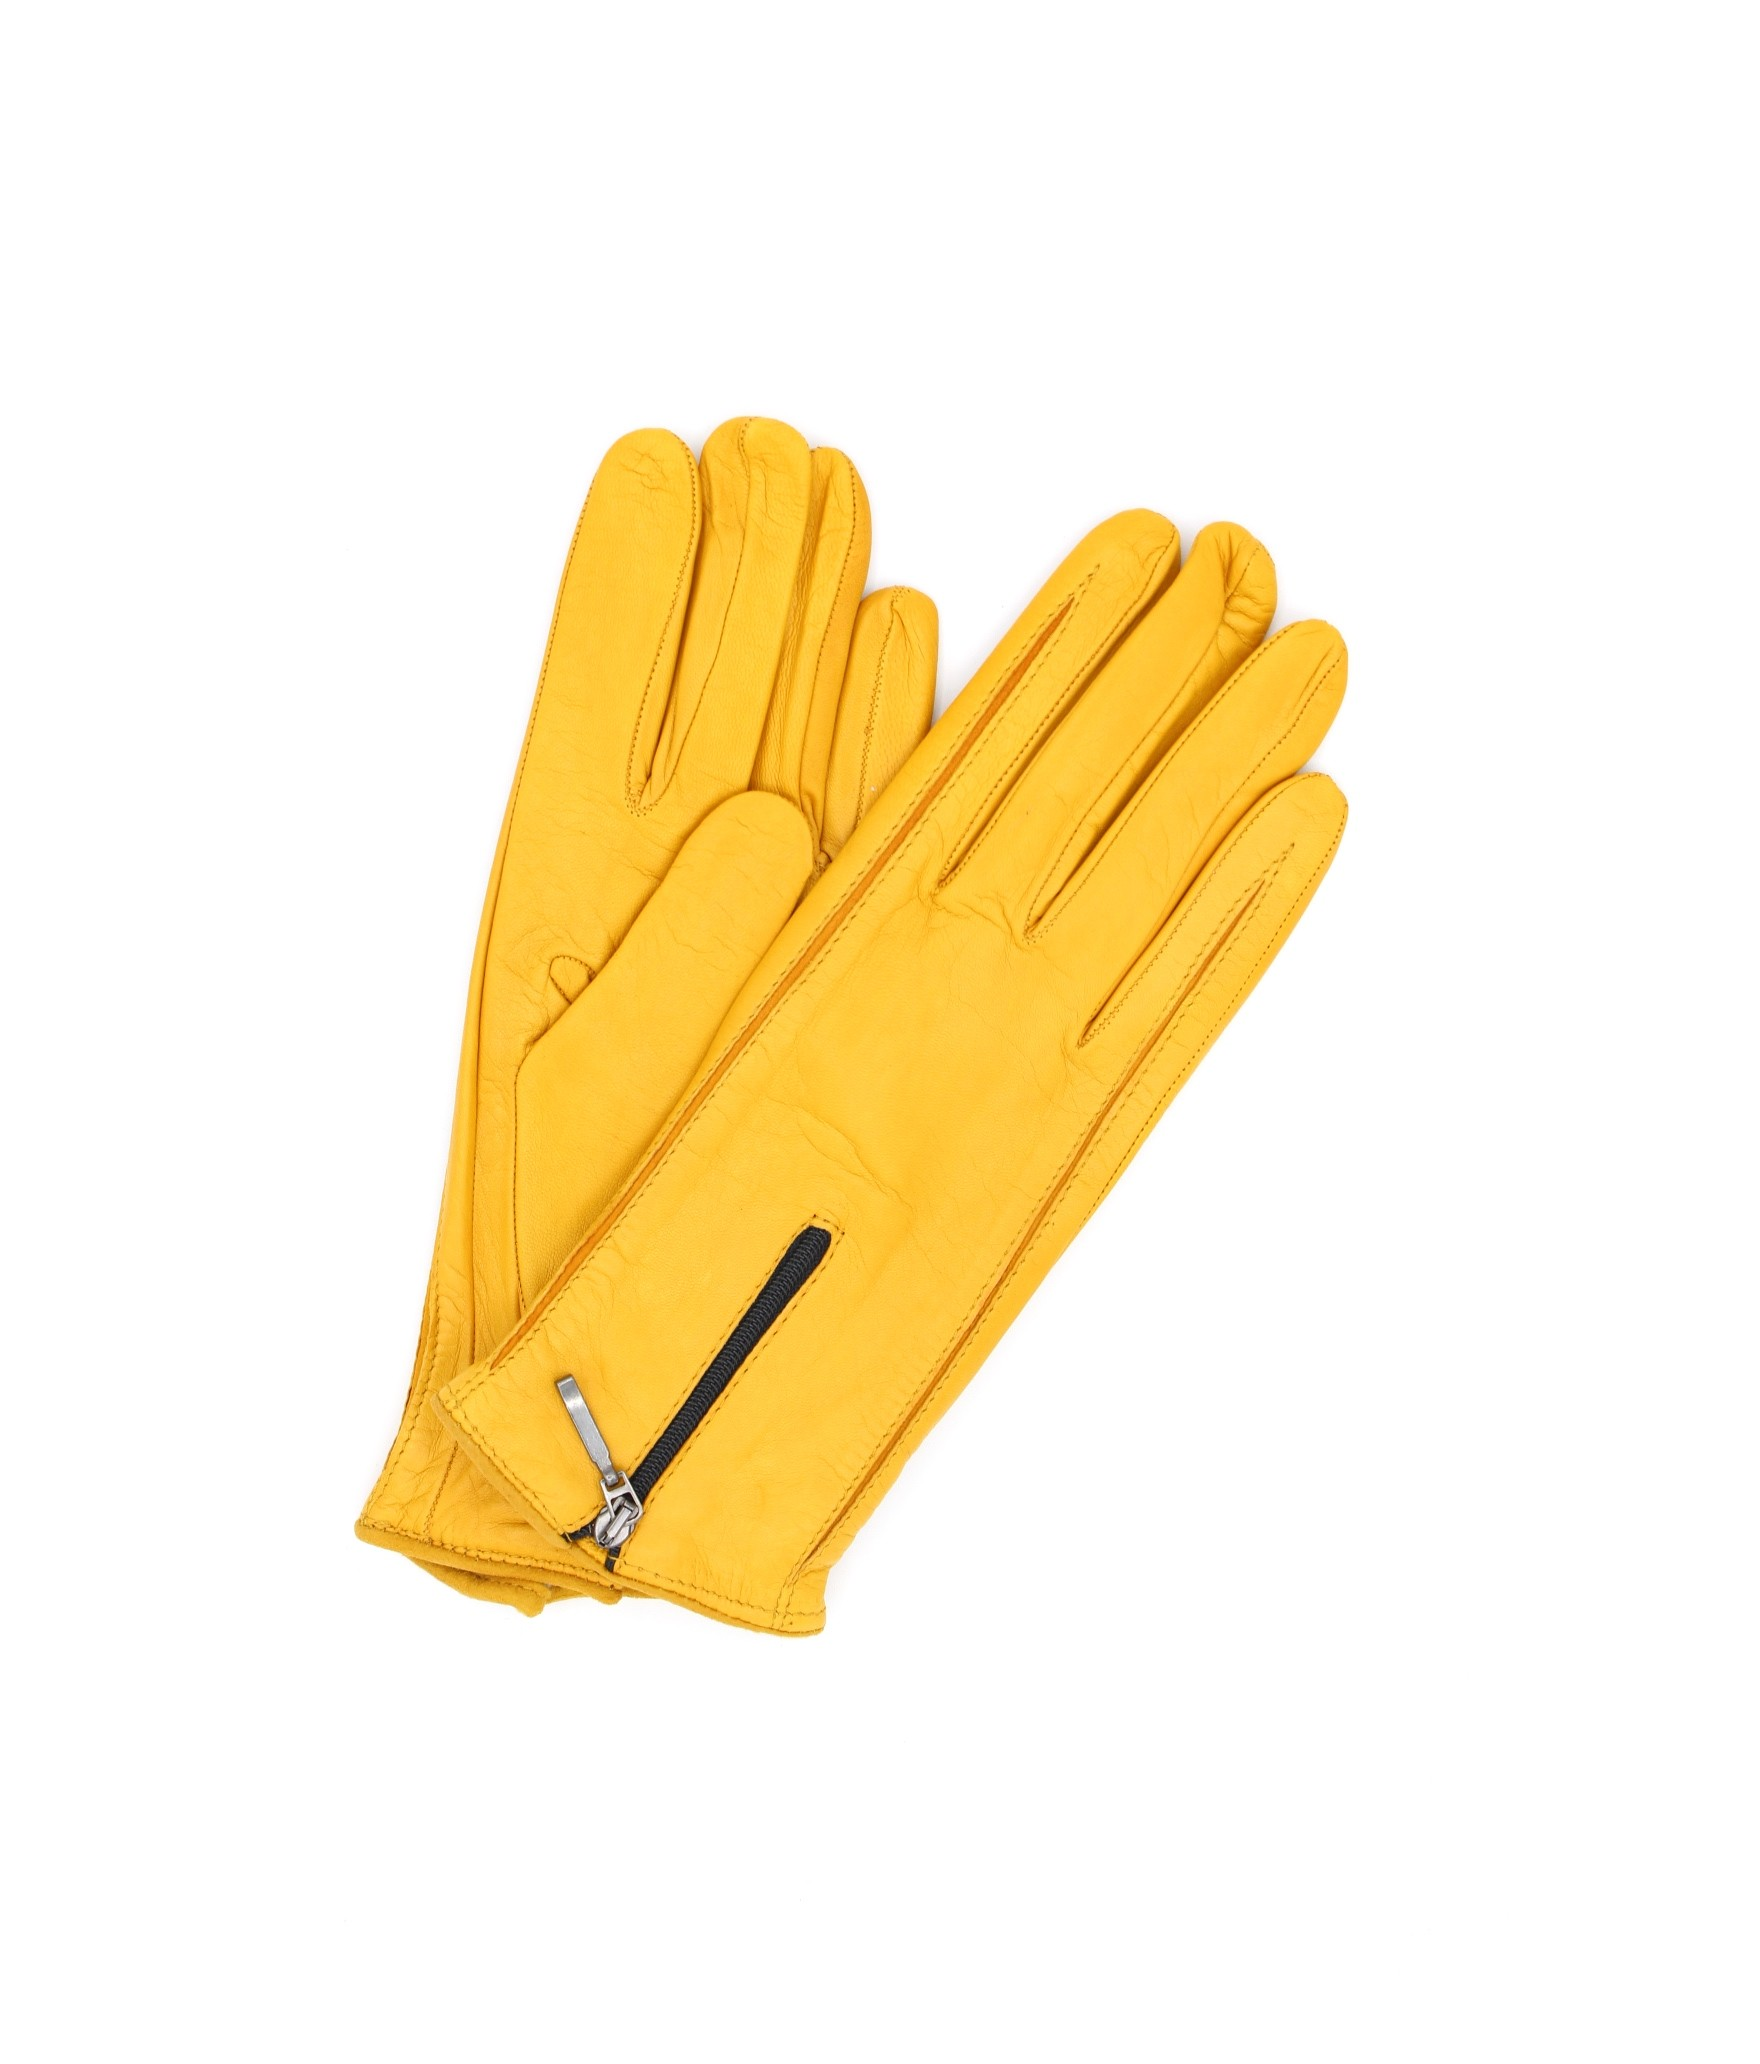 Nappa leather gloves cashmere lined with Zip Ocra Yellow